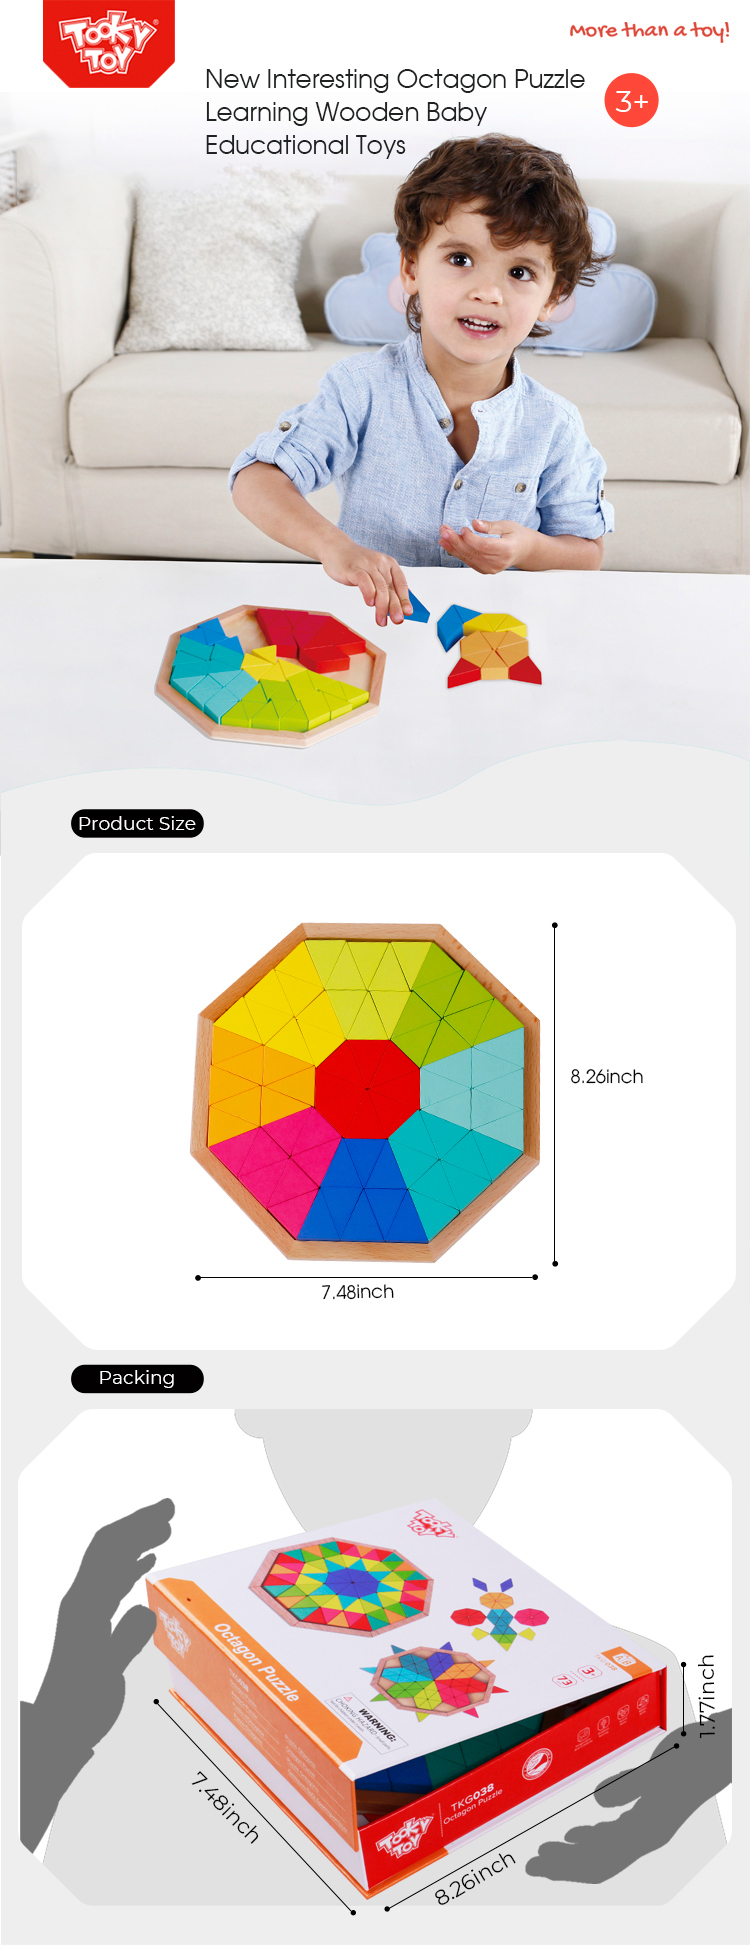 New Interesting Octagon Puzzle Learning Gift Set Wooden Children 2020 Toys For Kids